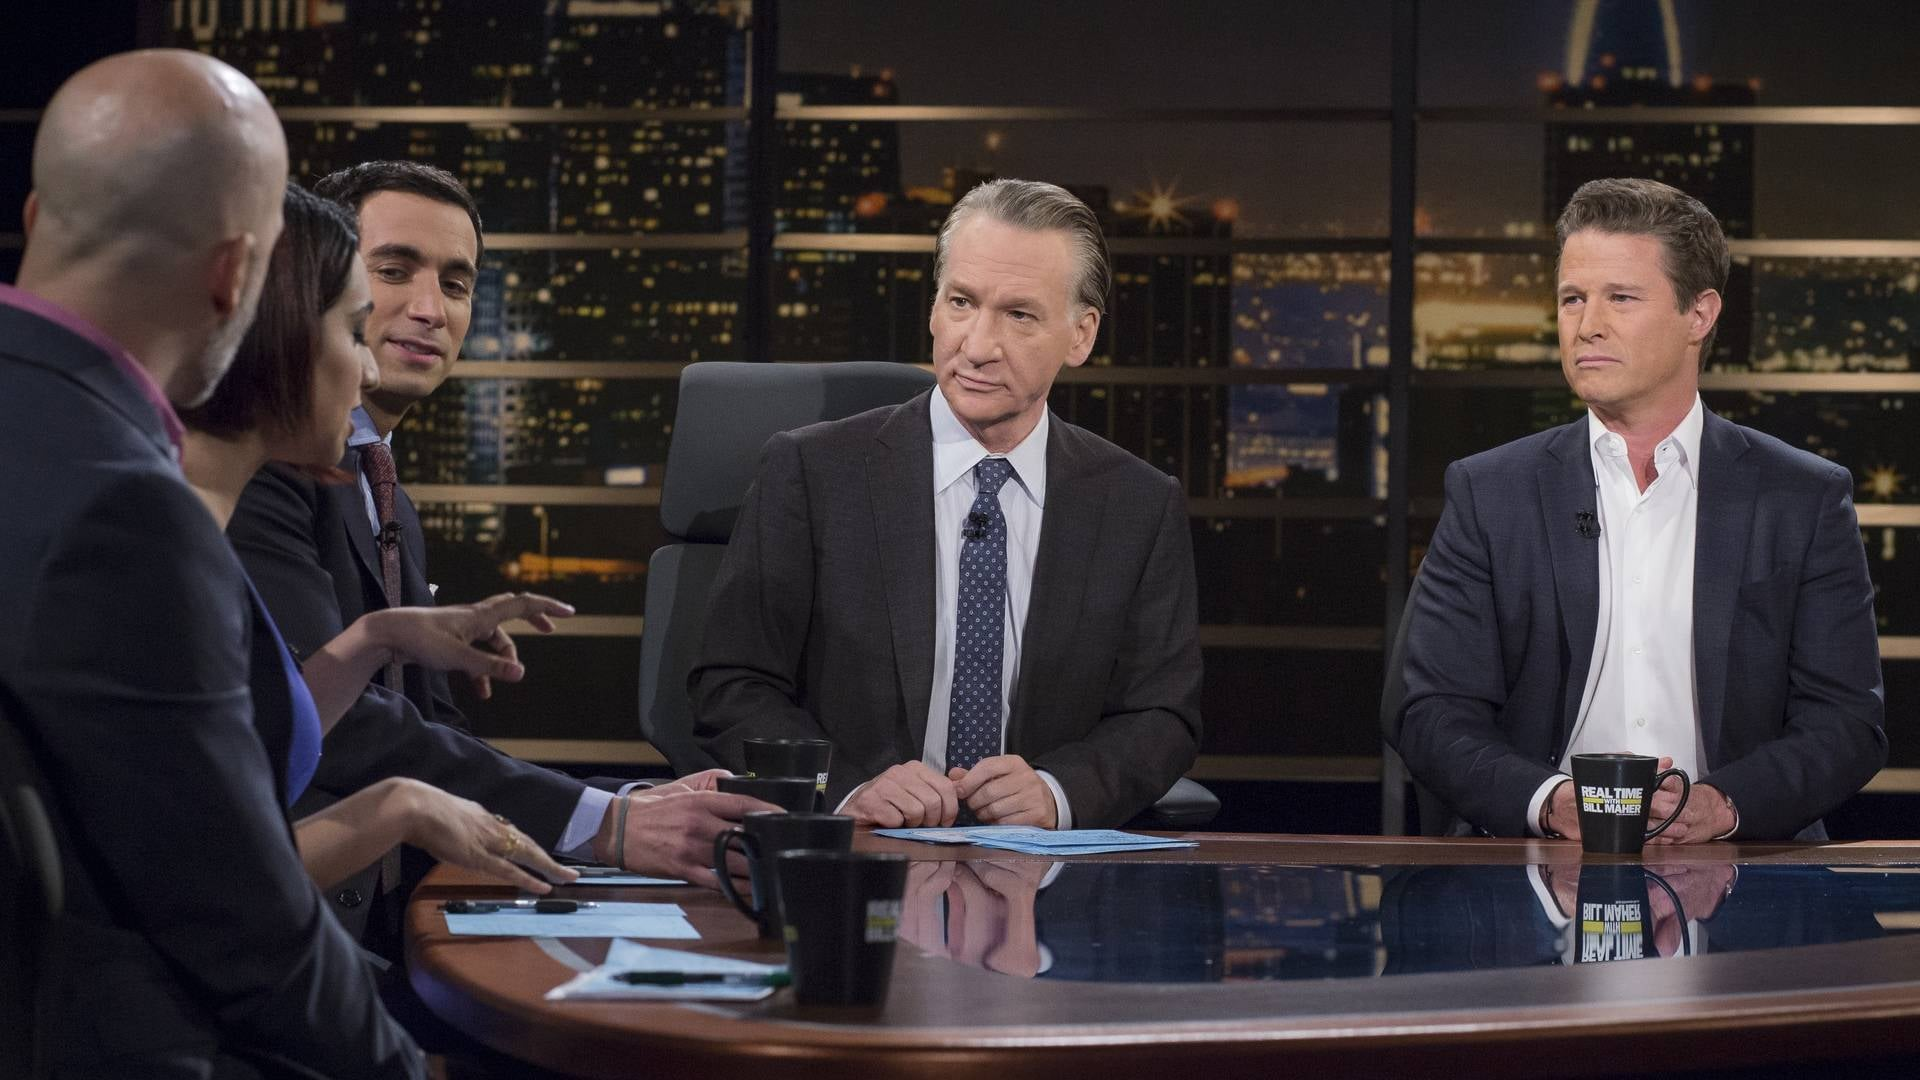 Real Time with Bill Maher Season 16 :Episode 8  Beto O'Rourke; Pete Dominick, Nayyera Haq And Andrew Ross Sorkin; Billy Bush